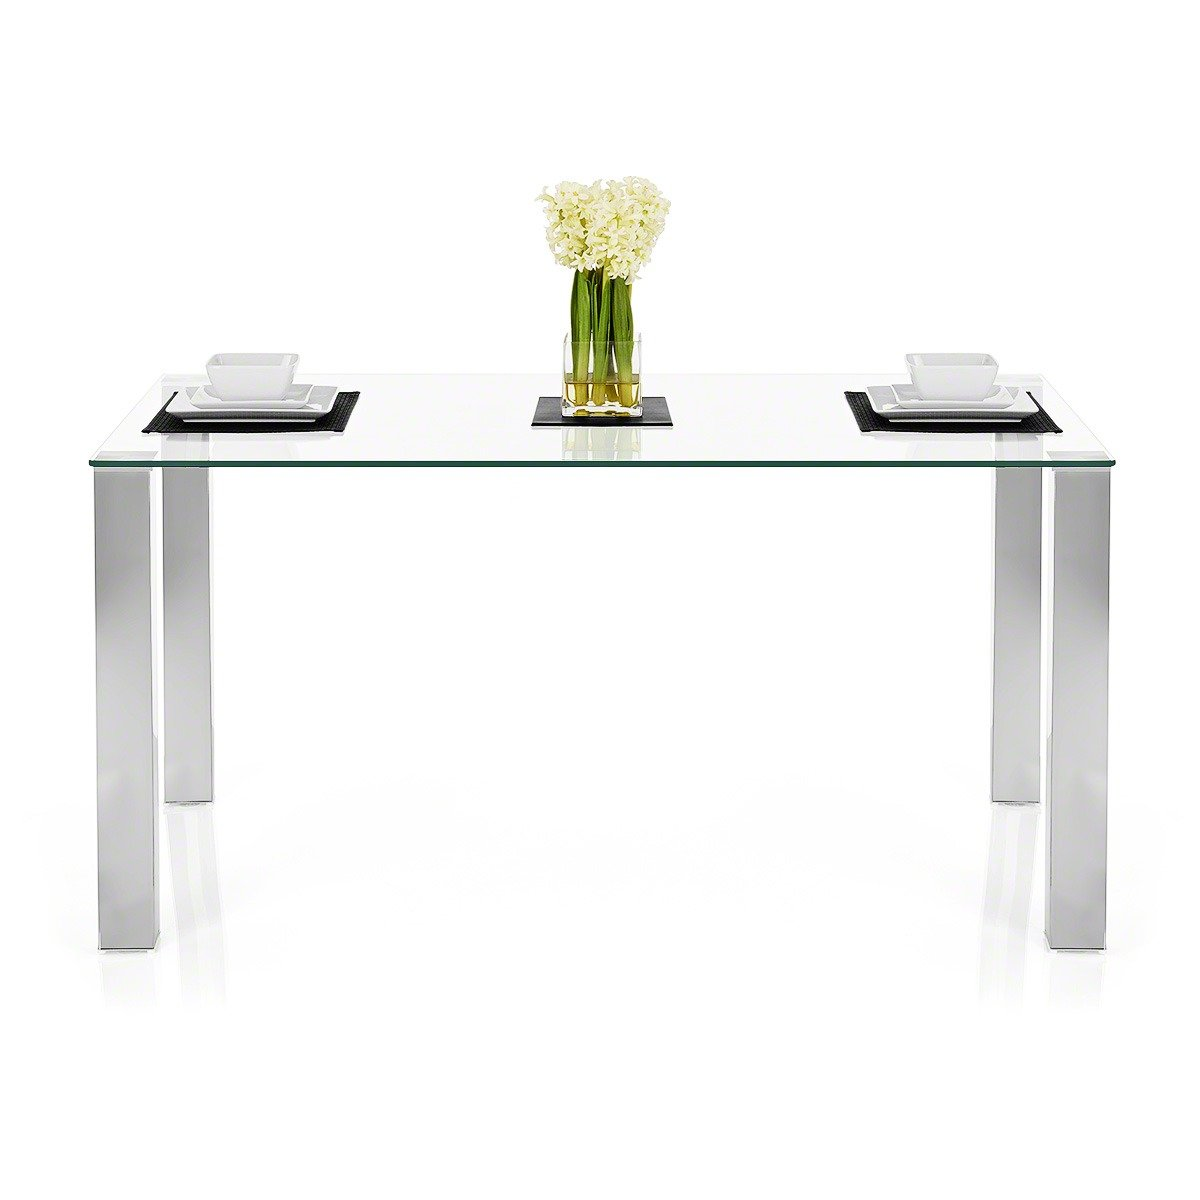 Chester Clear Glass Dining Table       reviews and more information